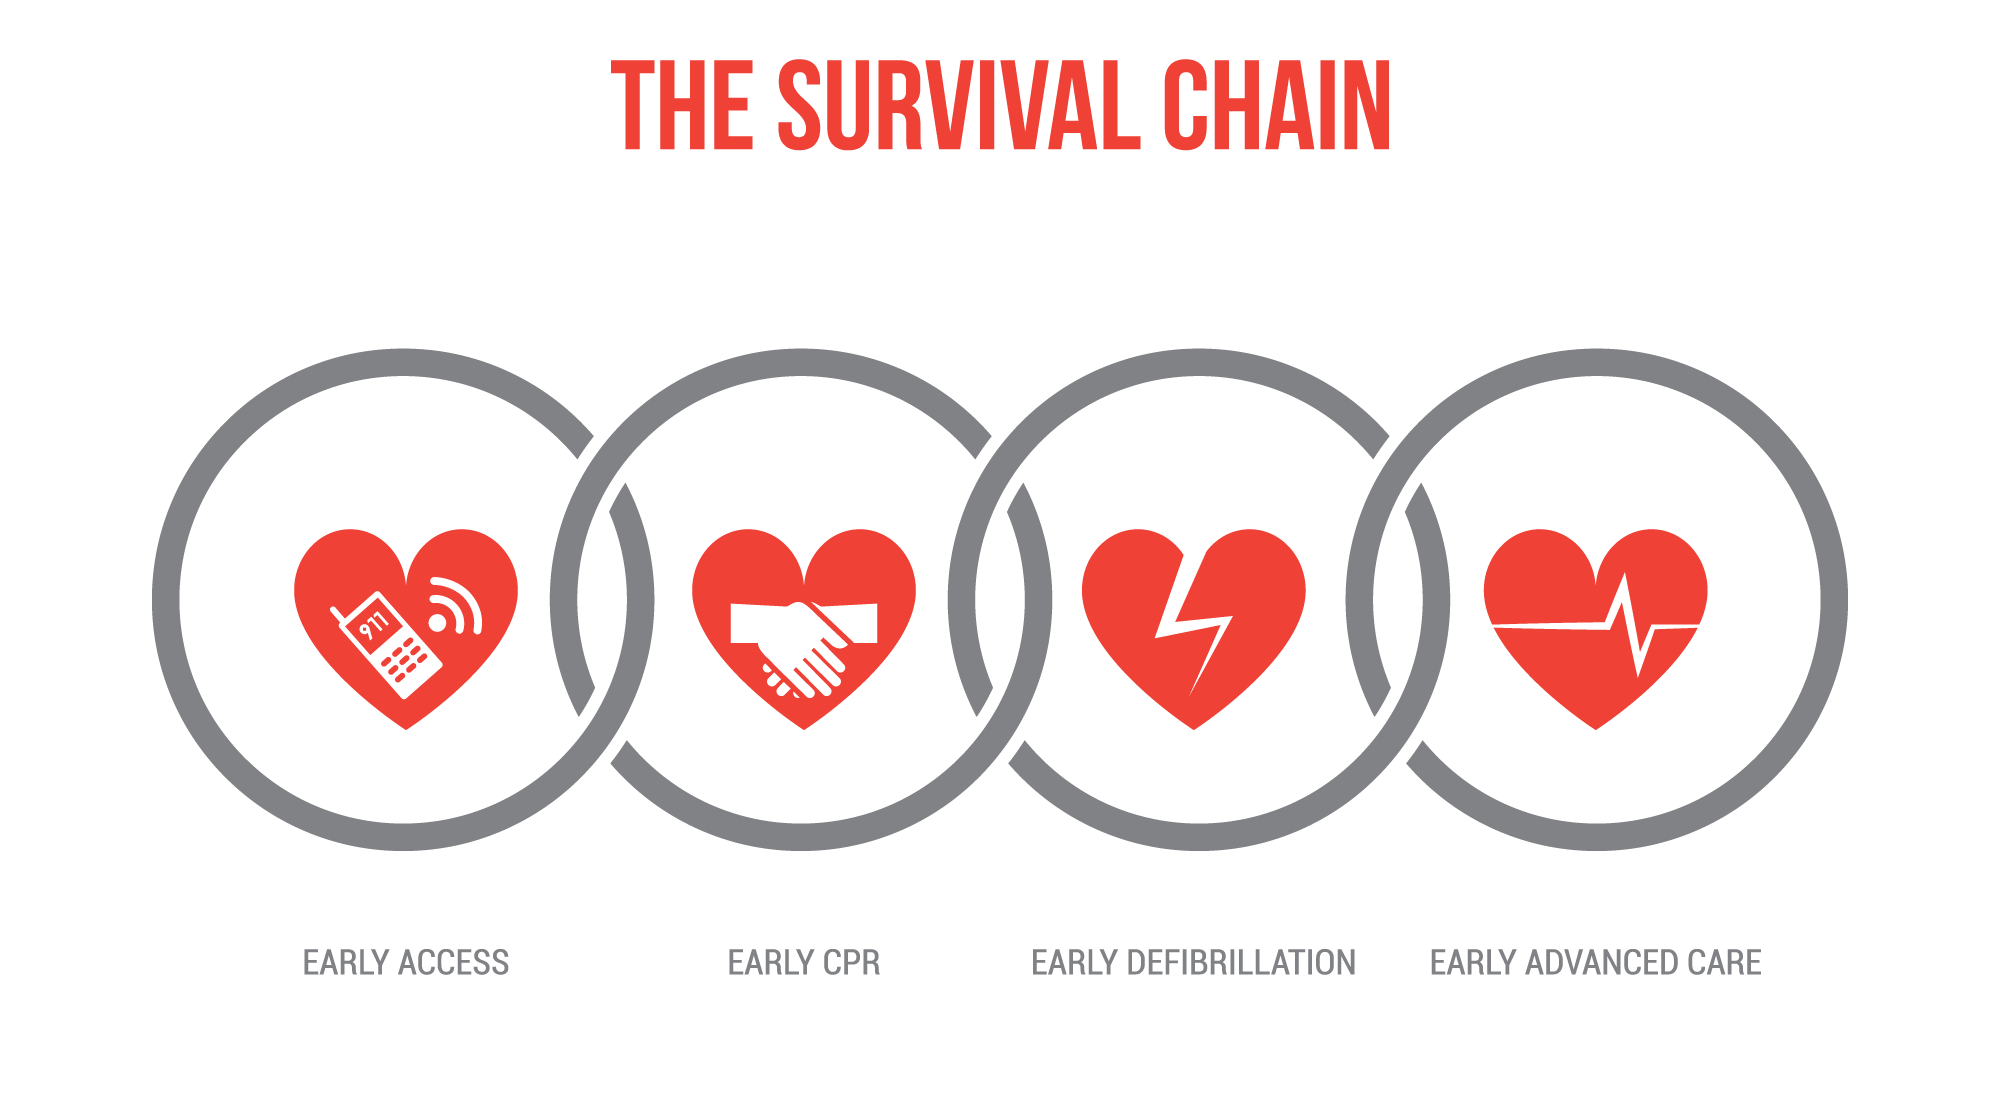 safety-cpr-aed-survival-chain